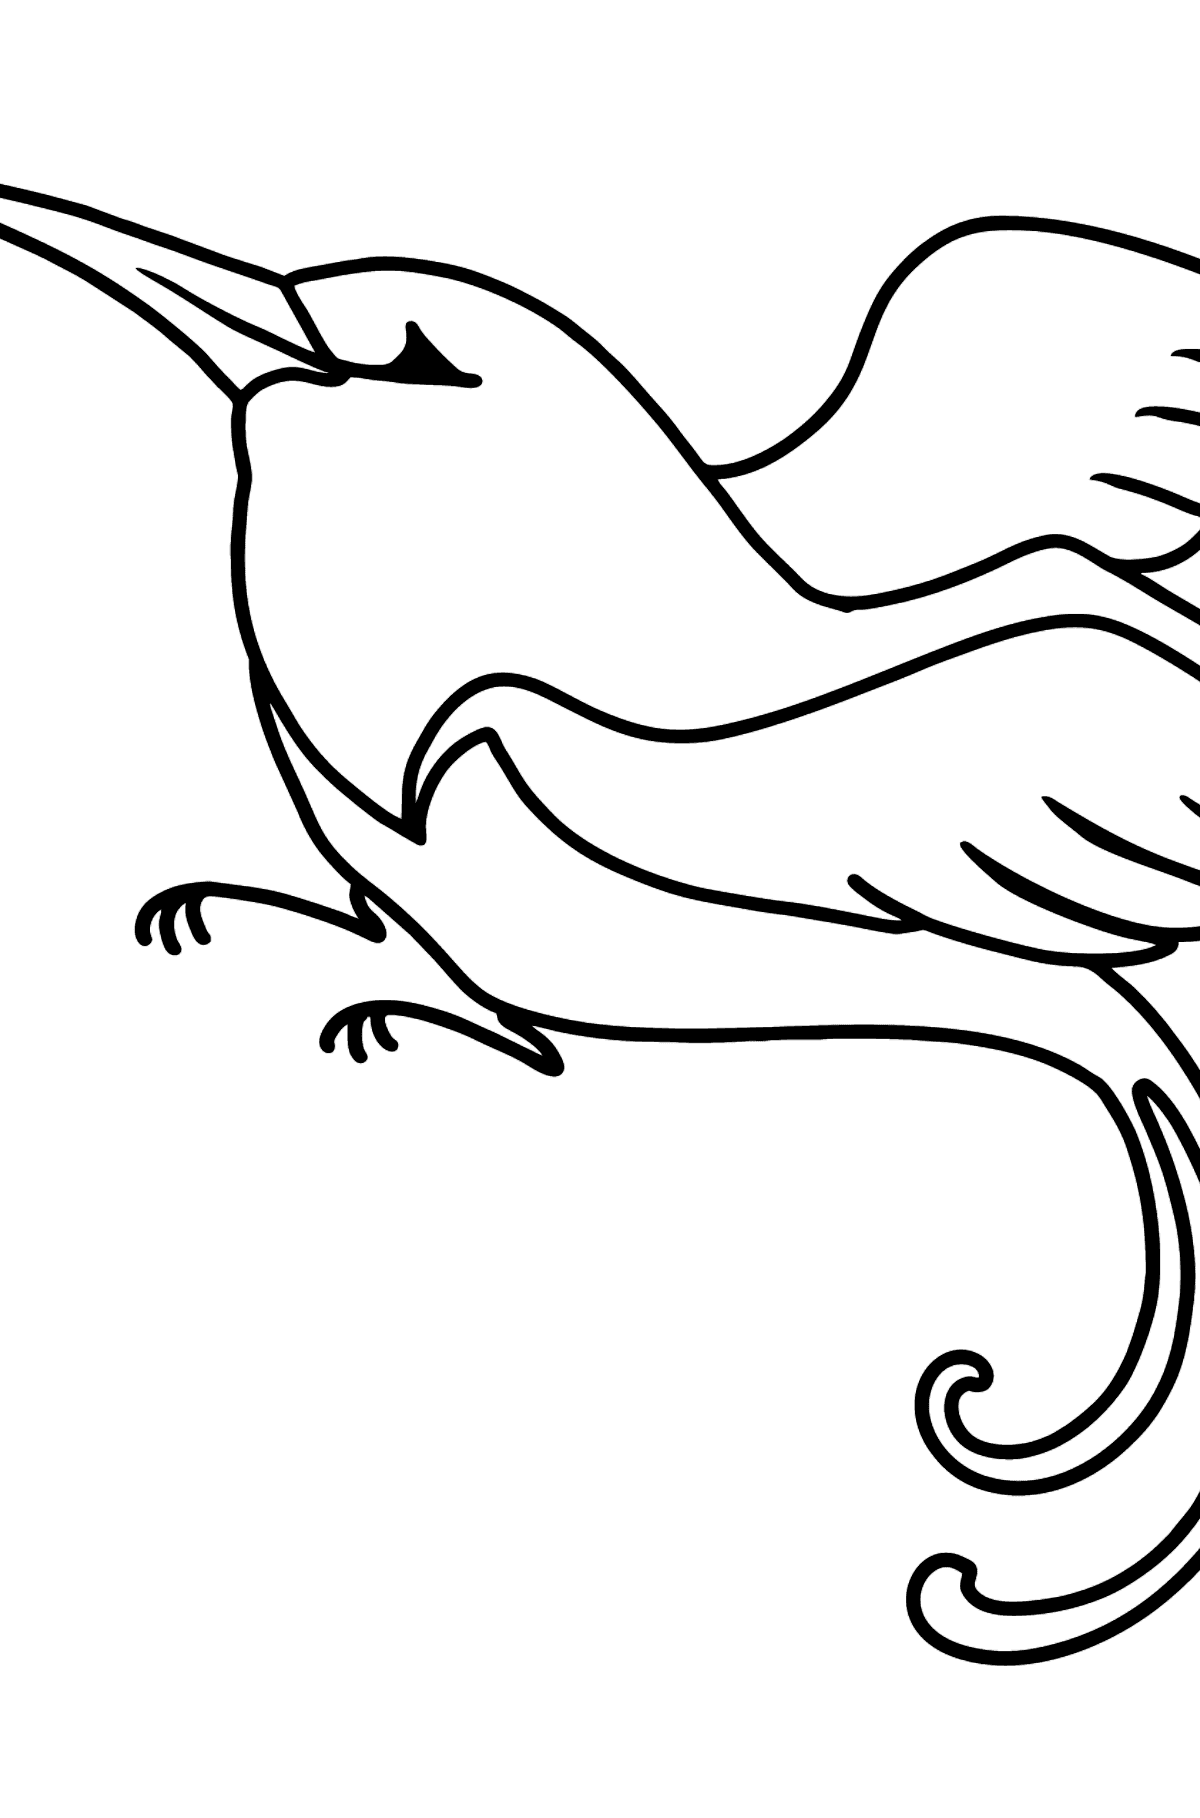 Hummingbird coloring page - Coloring Pages for Kids